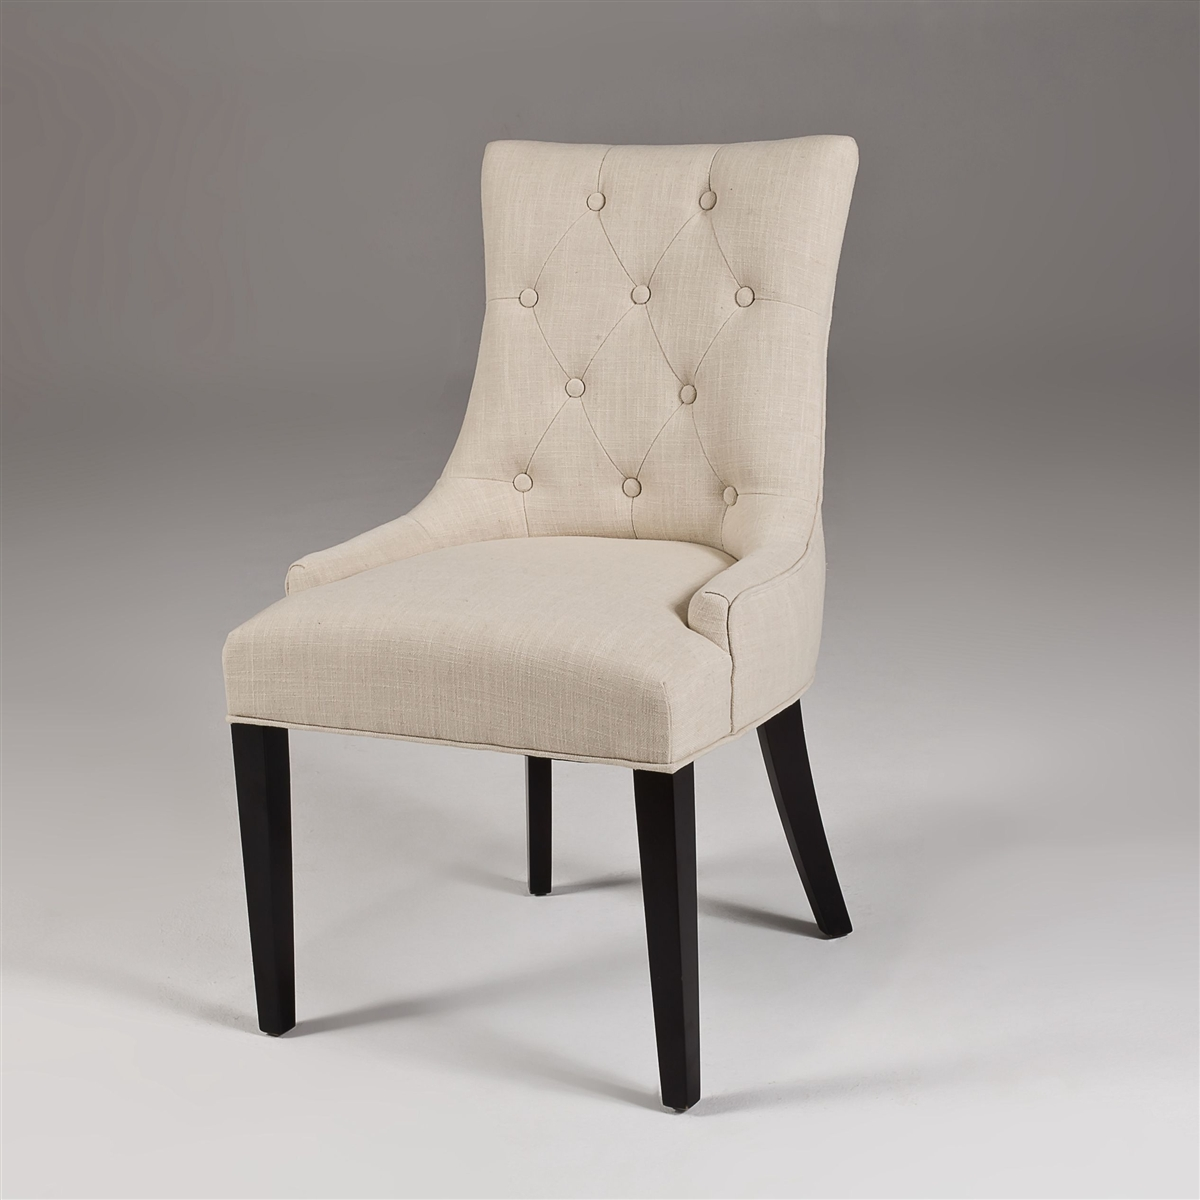 beige dining chairs wedding chair cover hire brighton modern linen tufted in white upholstered